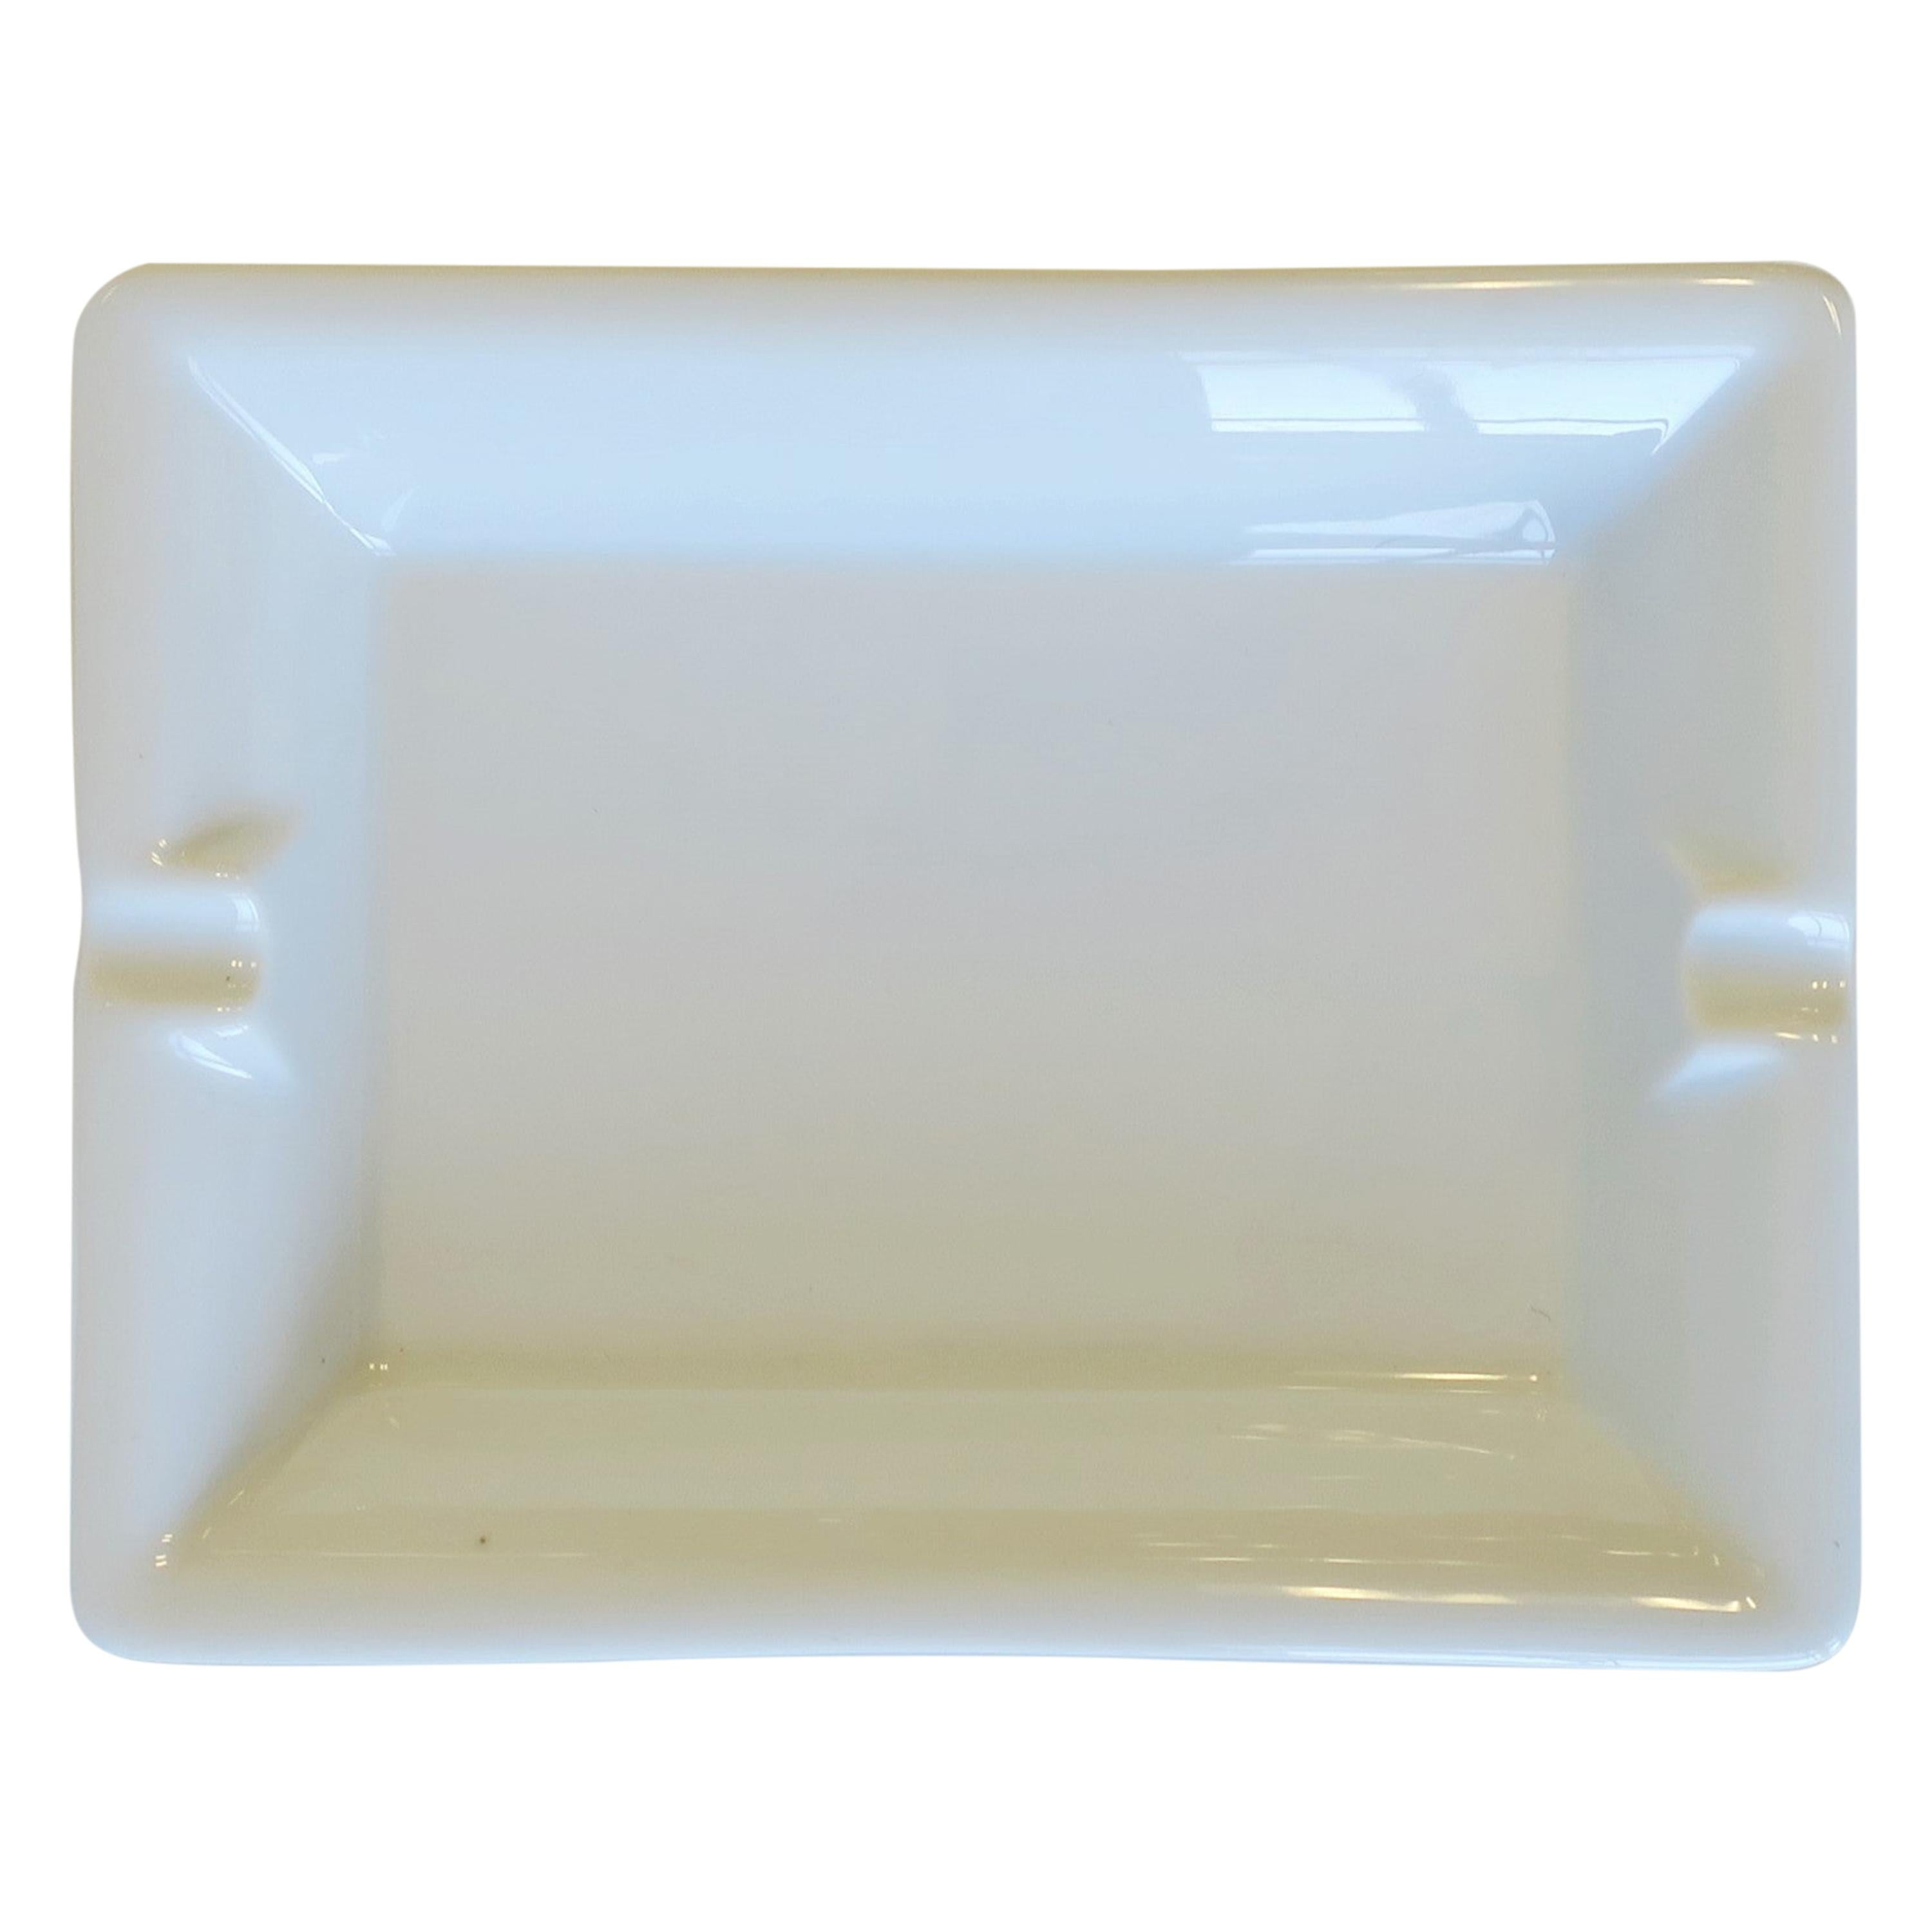 French White Porcelain Tray Vide-Poche Catchall or Ashtray